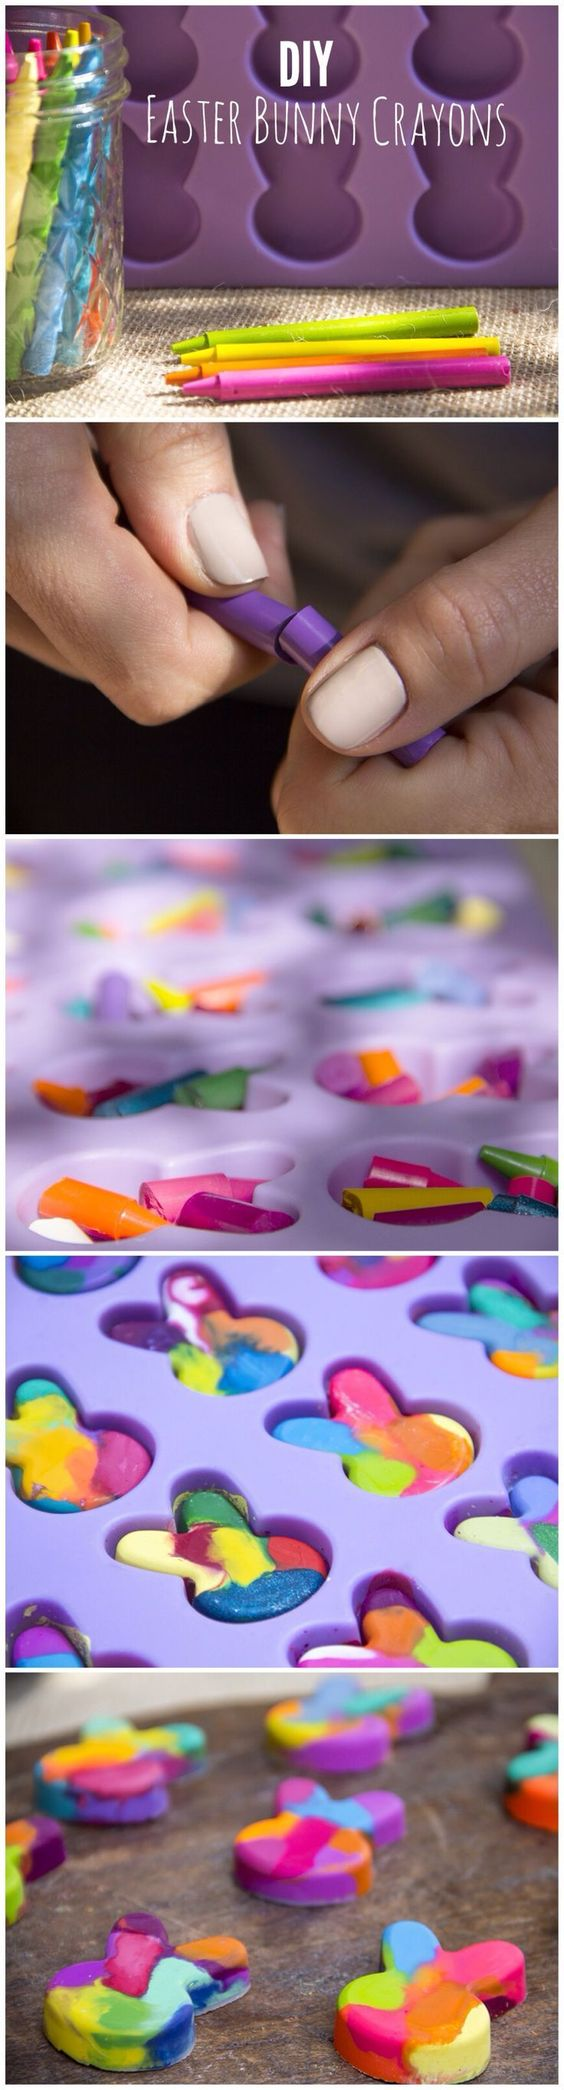 DIY Easter Bunny Crayons by Moonfrye.com Easter Crafts   Kids Crafts   Rainbow Crayons: